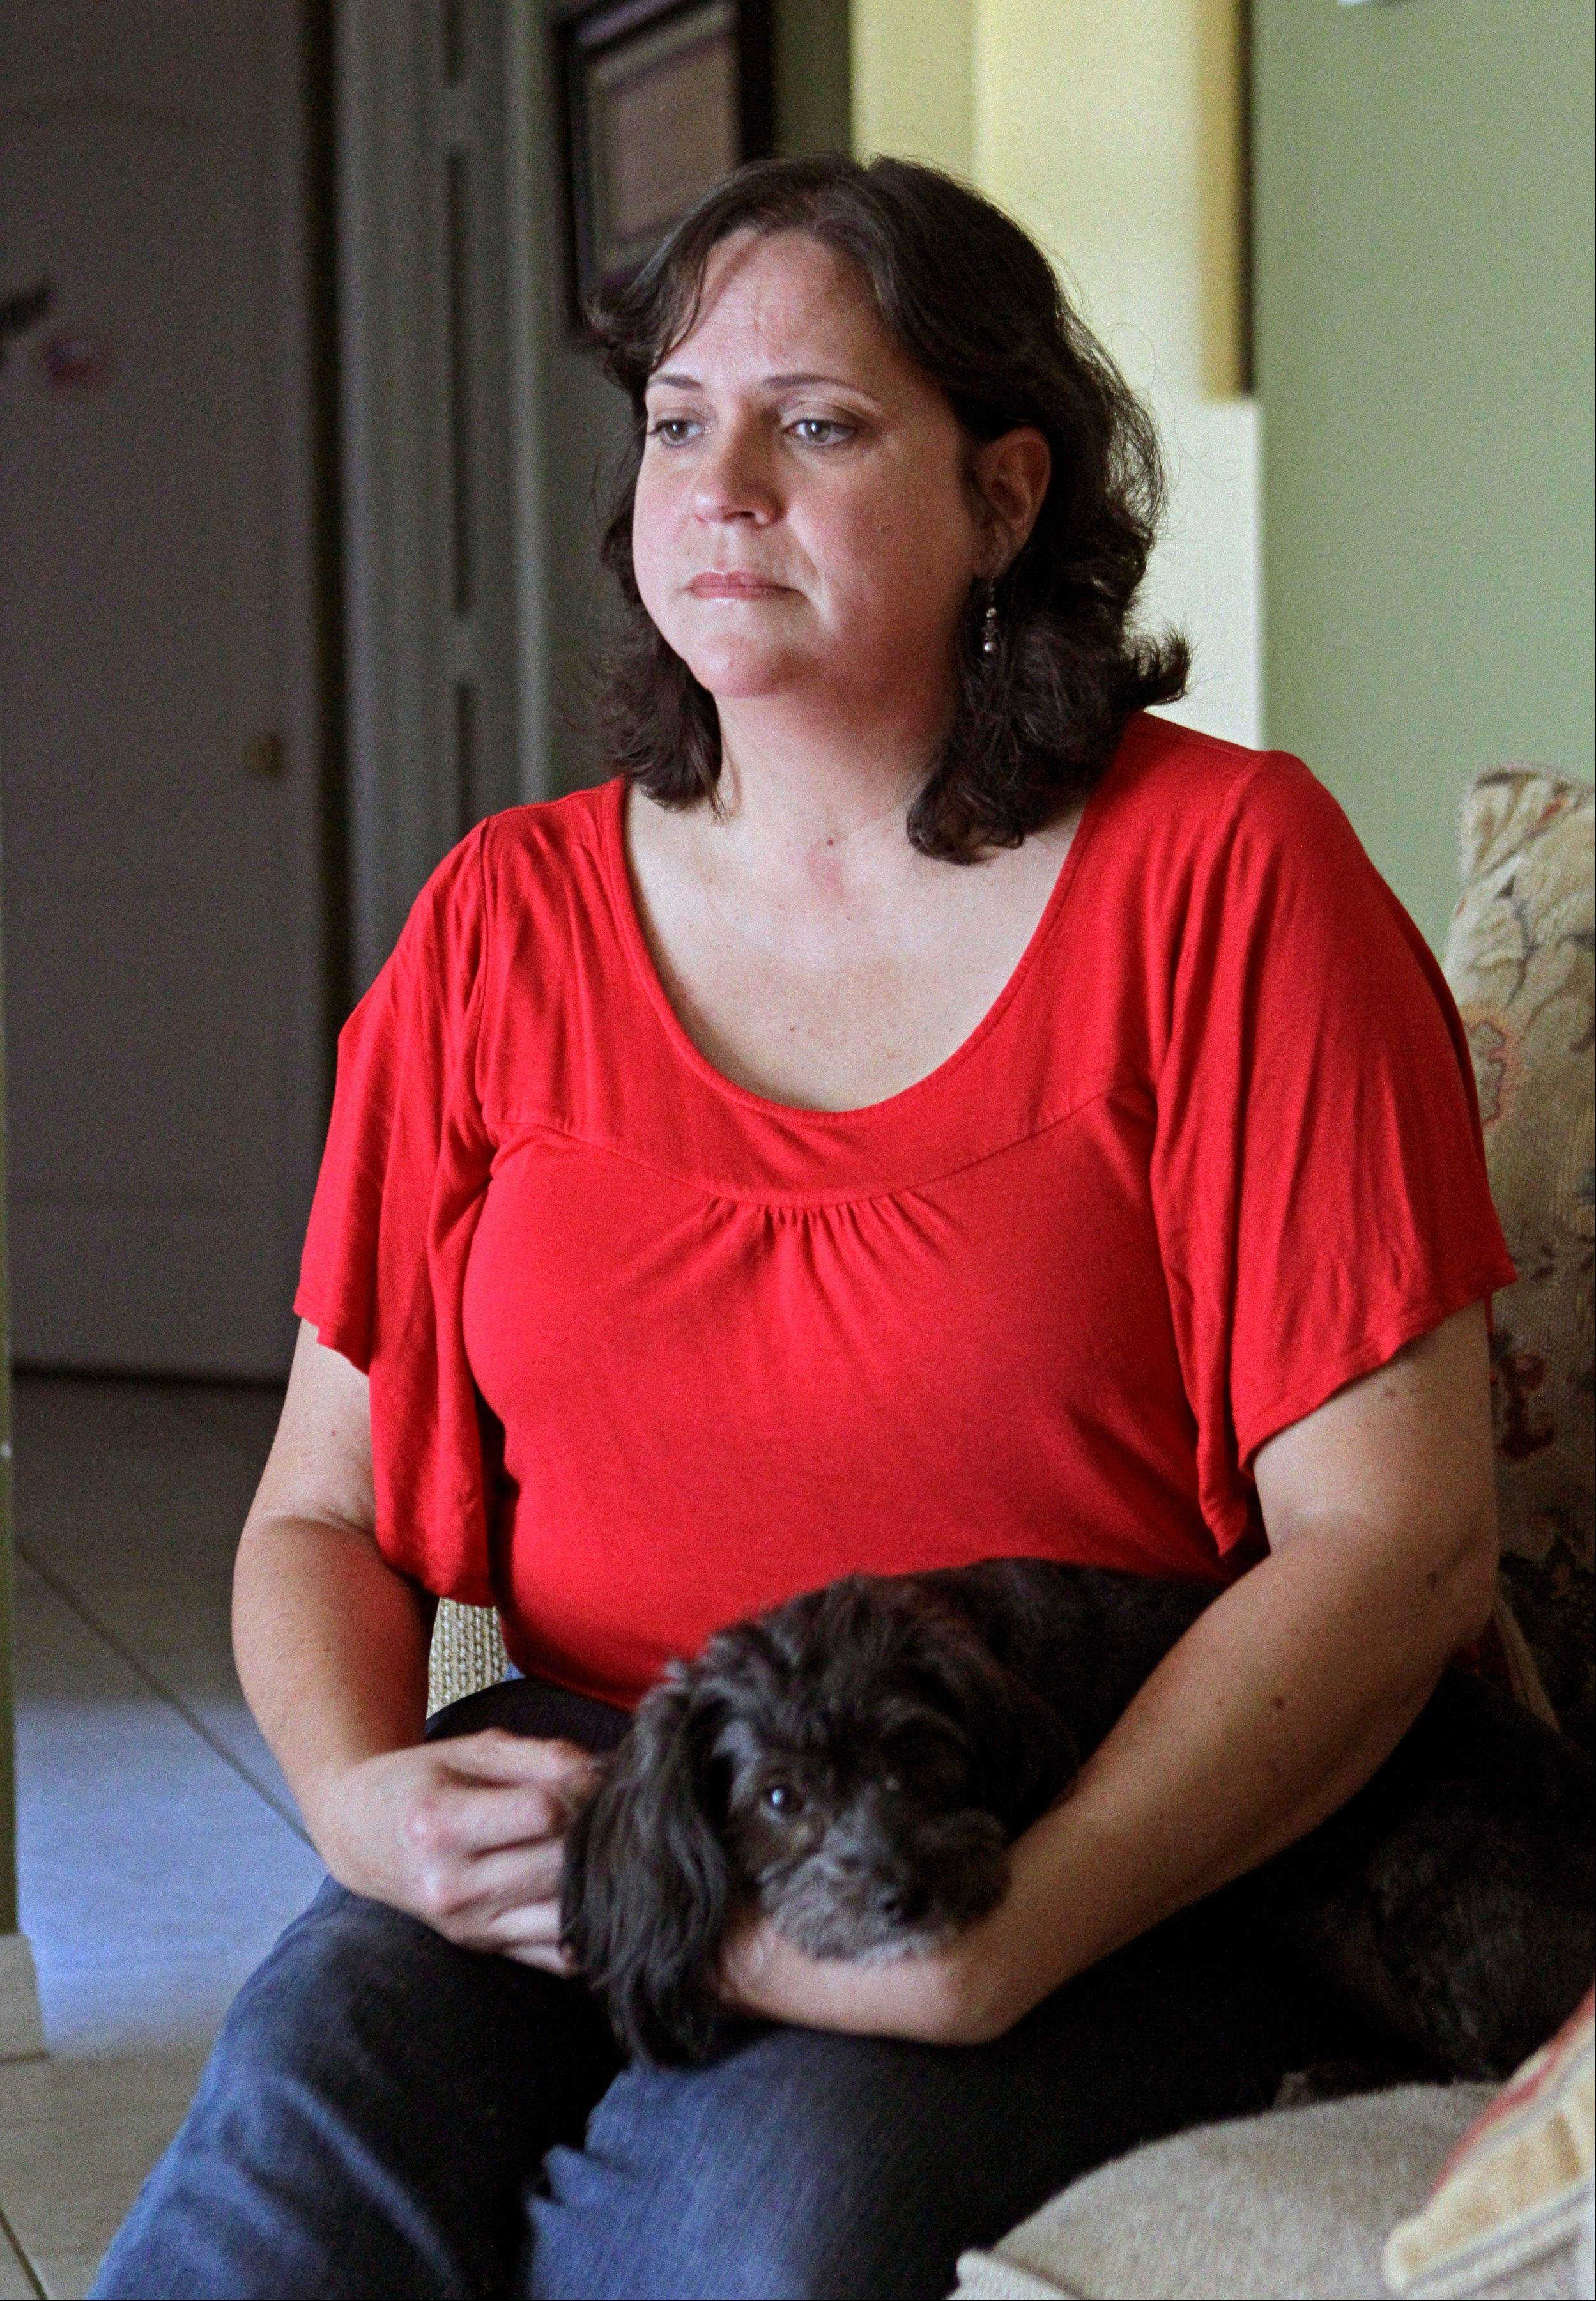 "Marisol Walker is fighting to keep the home that she and he husband bought about a year before his business collapsed. Walker says they haven't been able to pay the mortgage in 1� years. She works part-time, while her husband is trying to restart his business. She finds the current political debate alienating. ""I listen to politicians today and it makes me angry,"" she says. ""I want them to explain to me how two willing workers are struggling and have lost everything. ... I don't think it matters who's running the government. I don't see how any of them are going to help any of us living in the real world."""